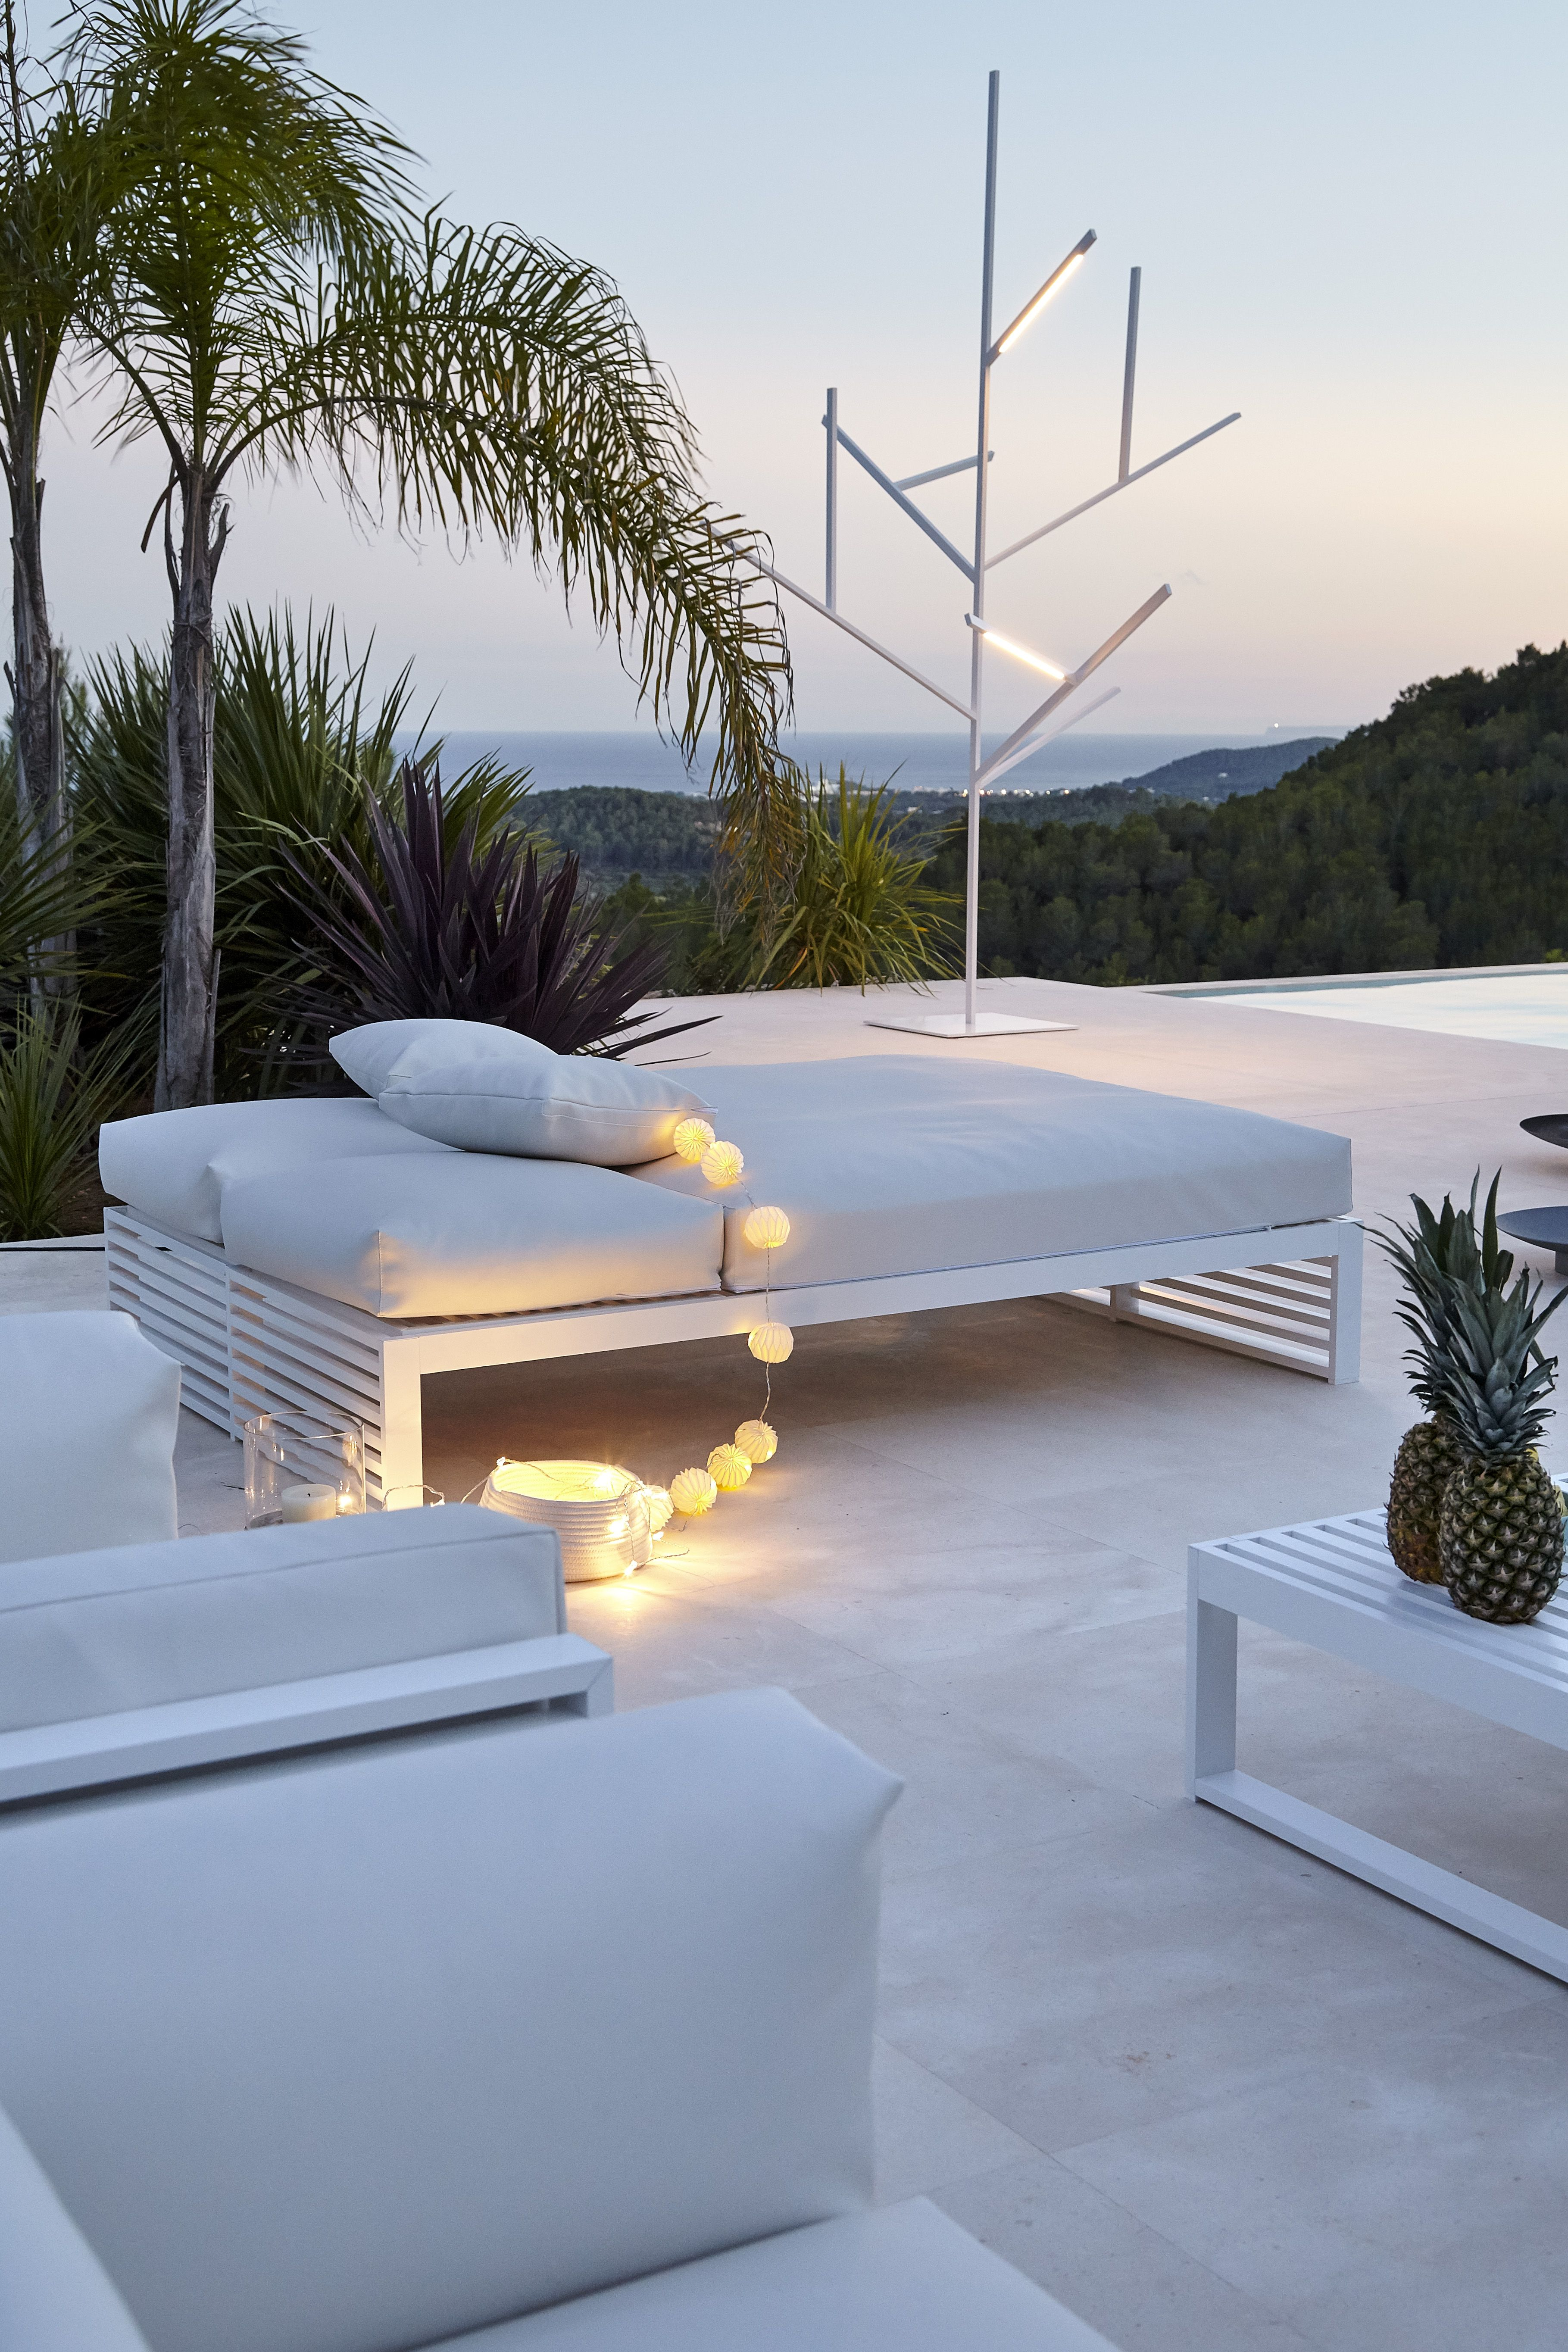 GANDIA BLASCO DNA daybed and Blau lamp by Fran Silvestre Arquitectos